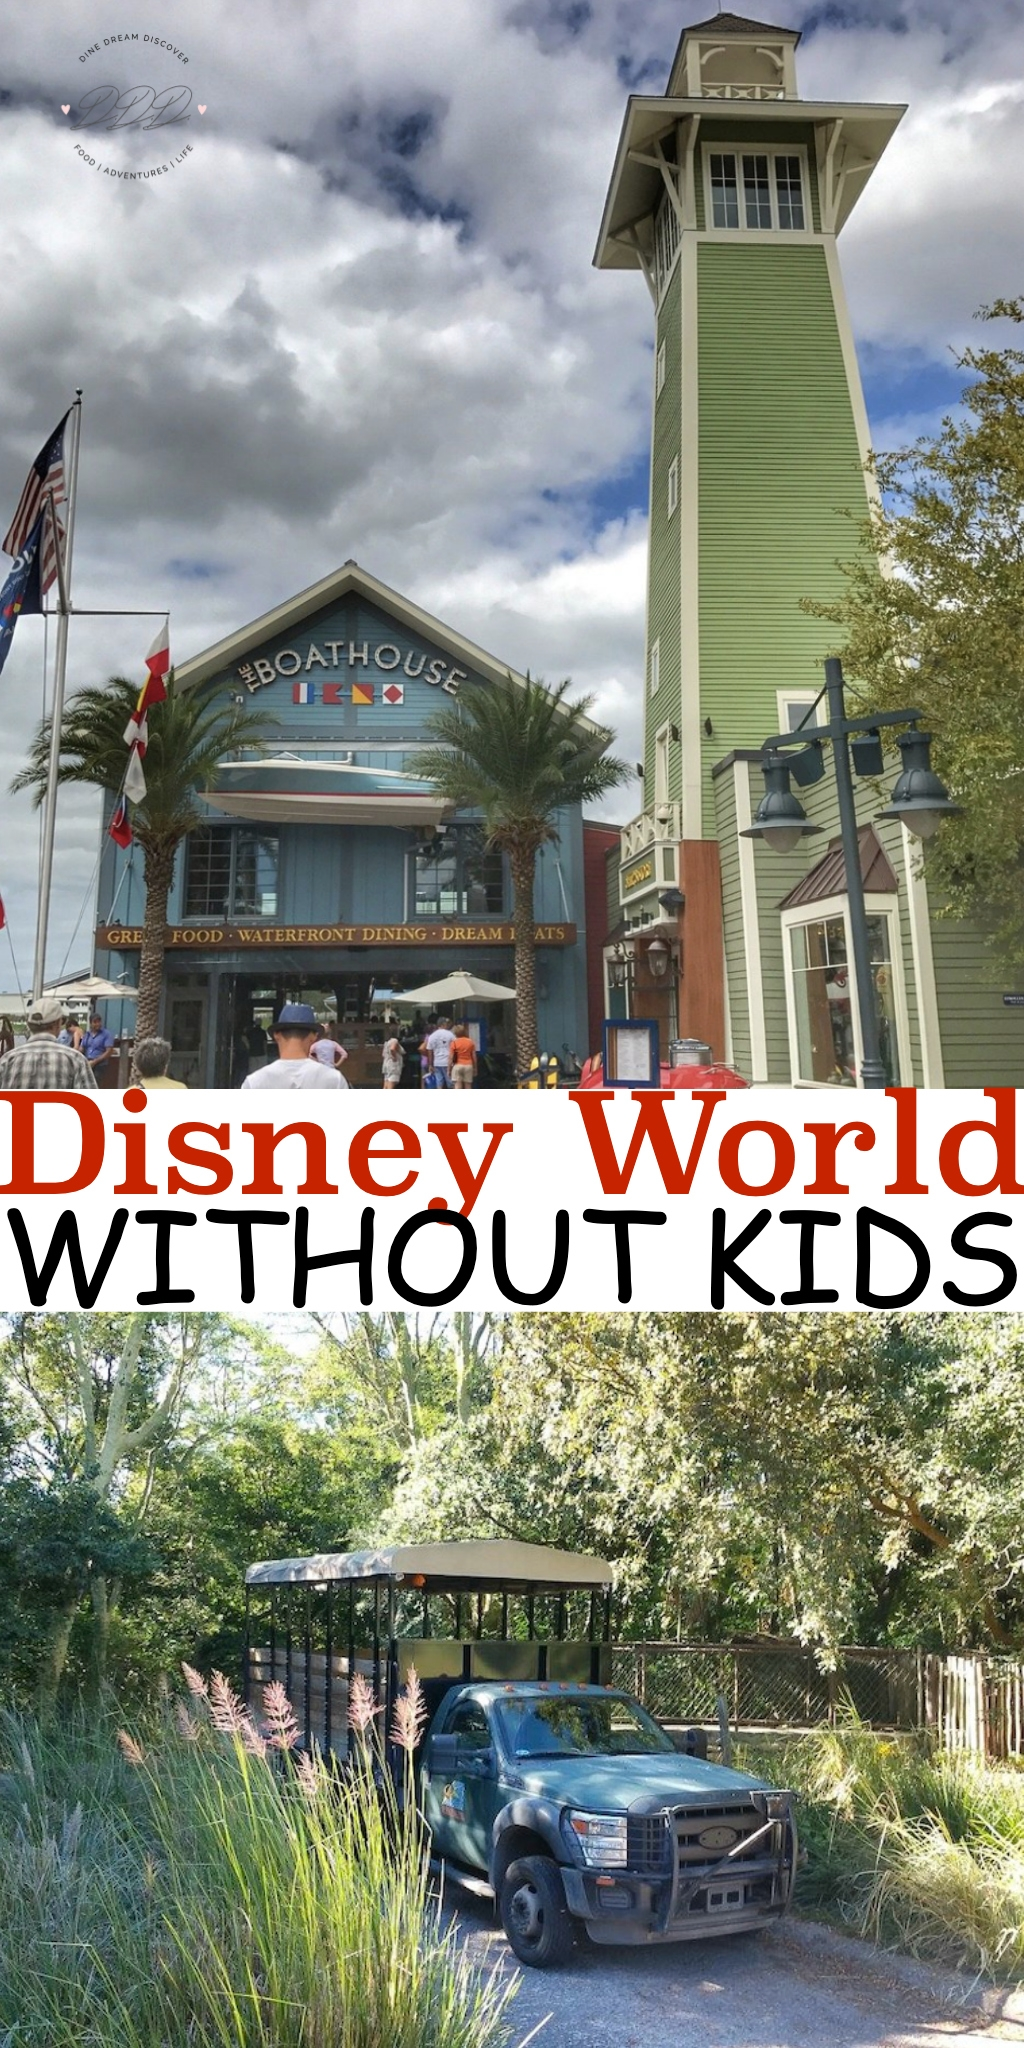 We have some ideas on how to step your trip to the House of Mouse up a notch. Here's our favorite things to do at Disney World without kids!